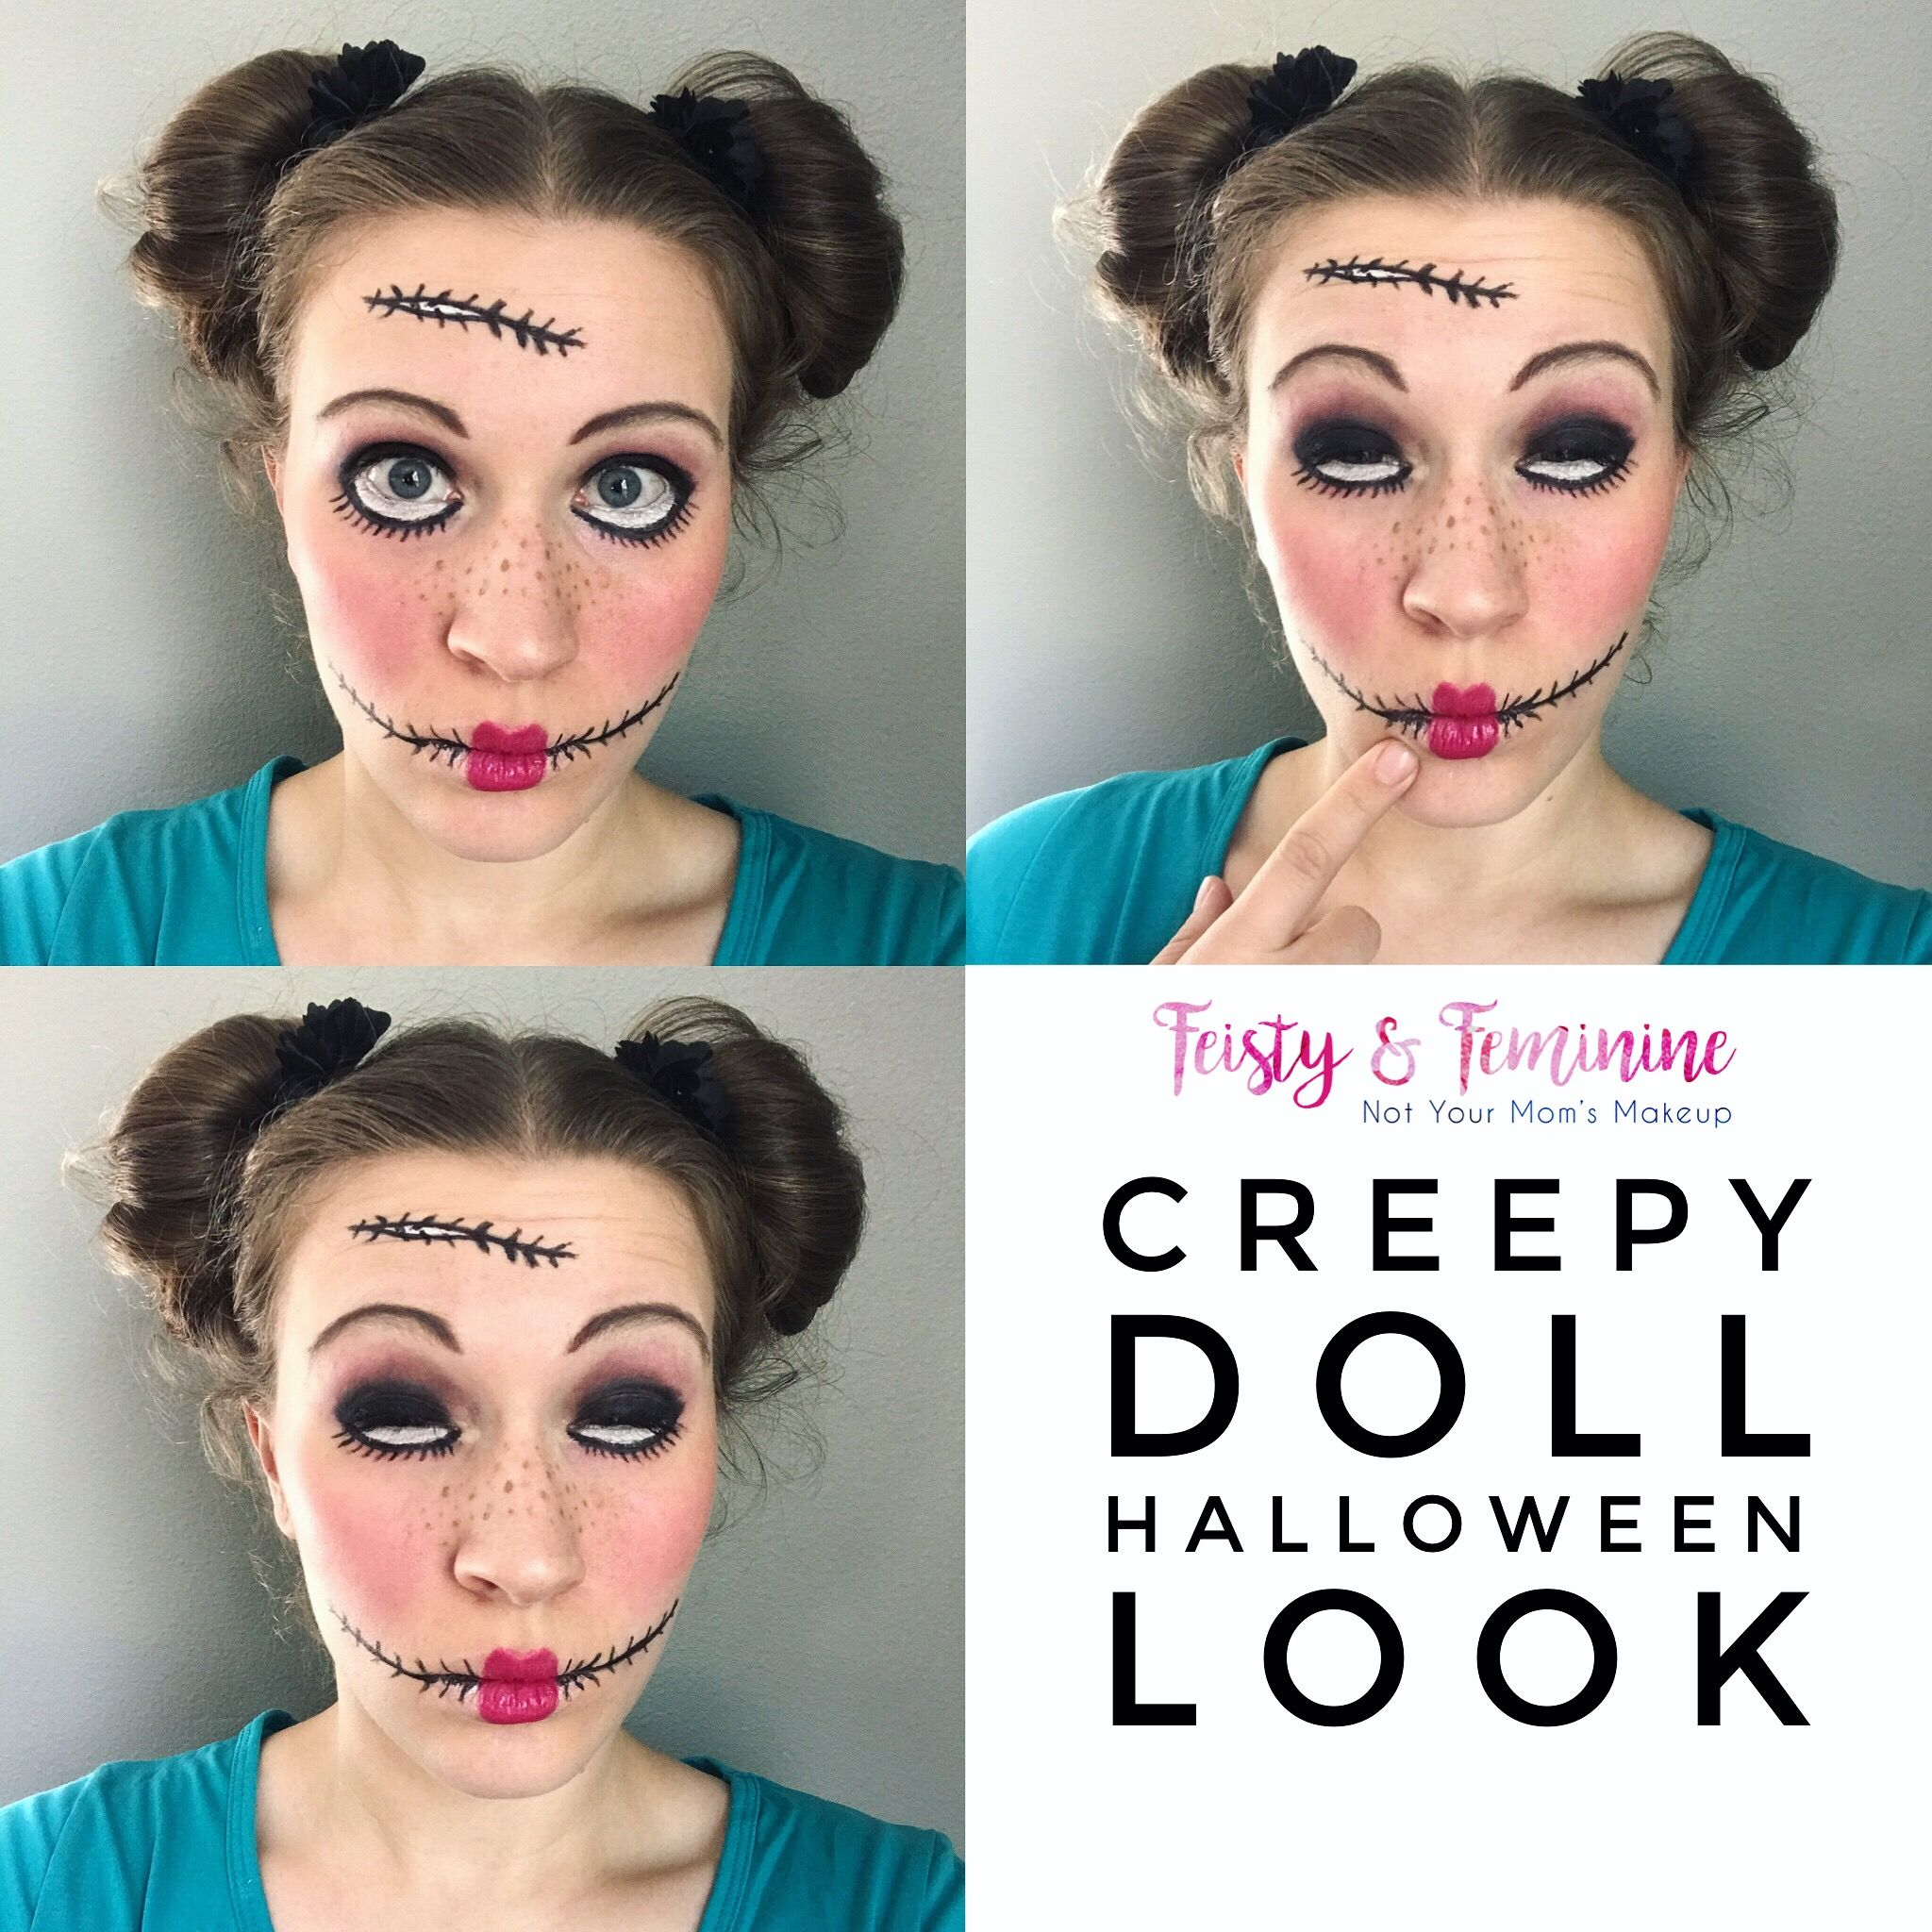 Get ready for Halloween with this creepy doll look! All